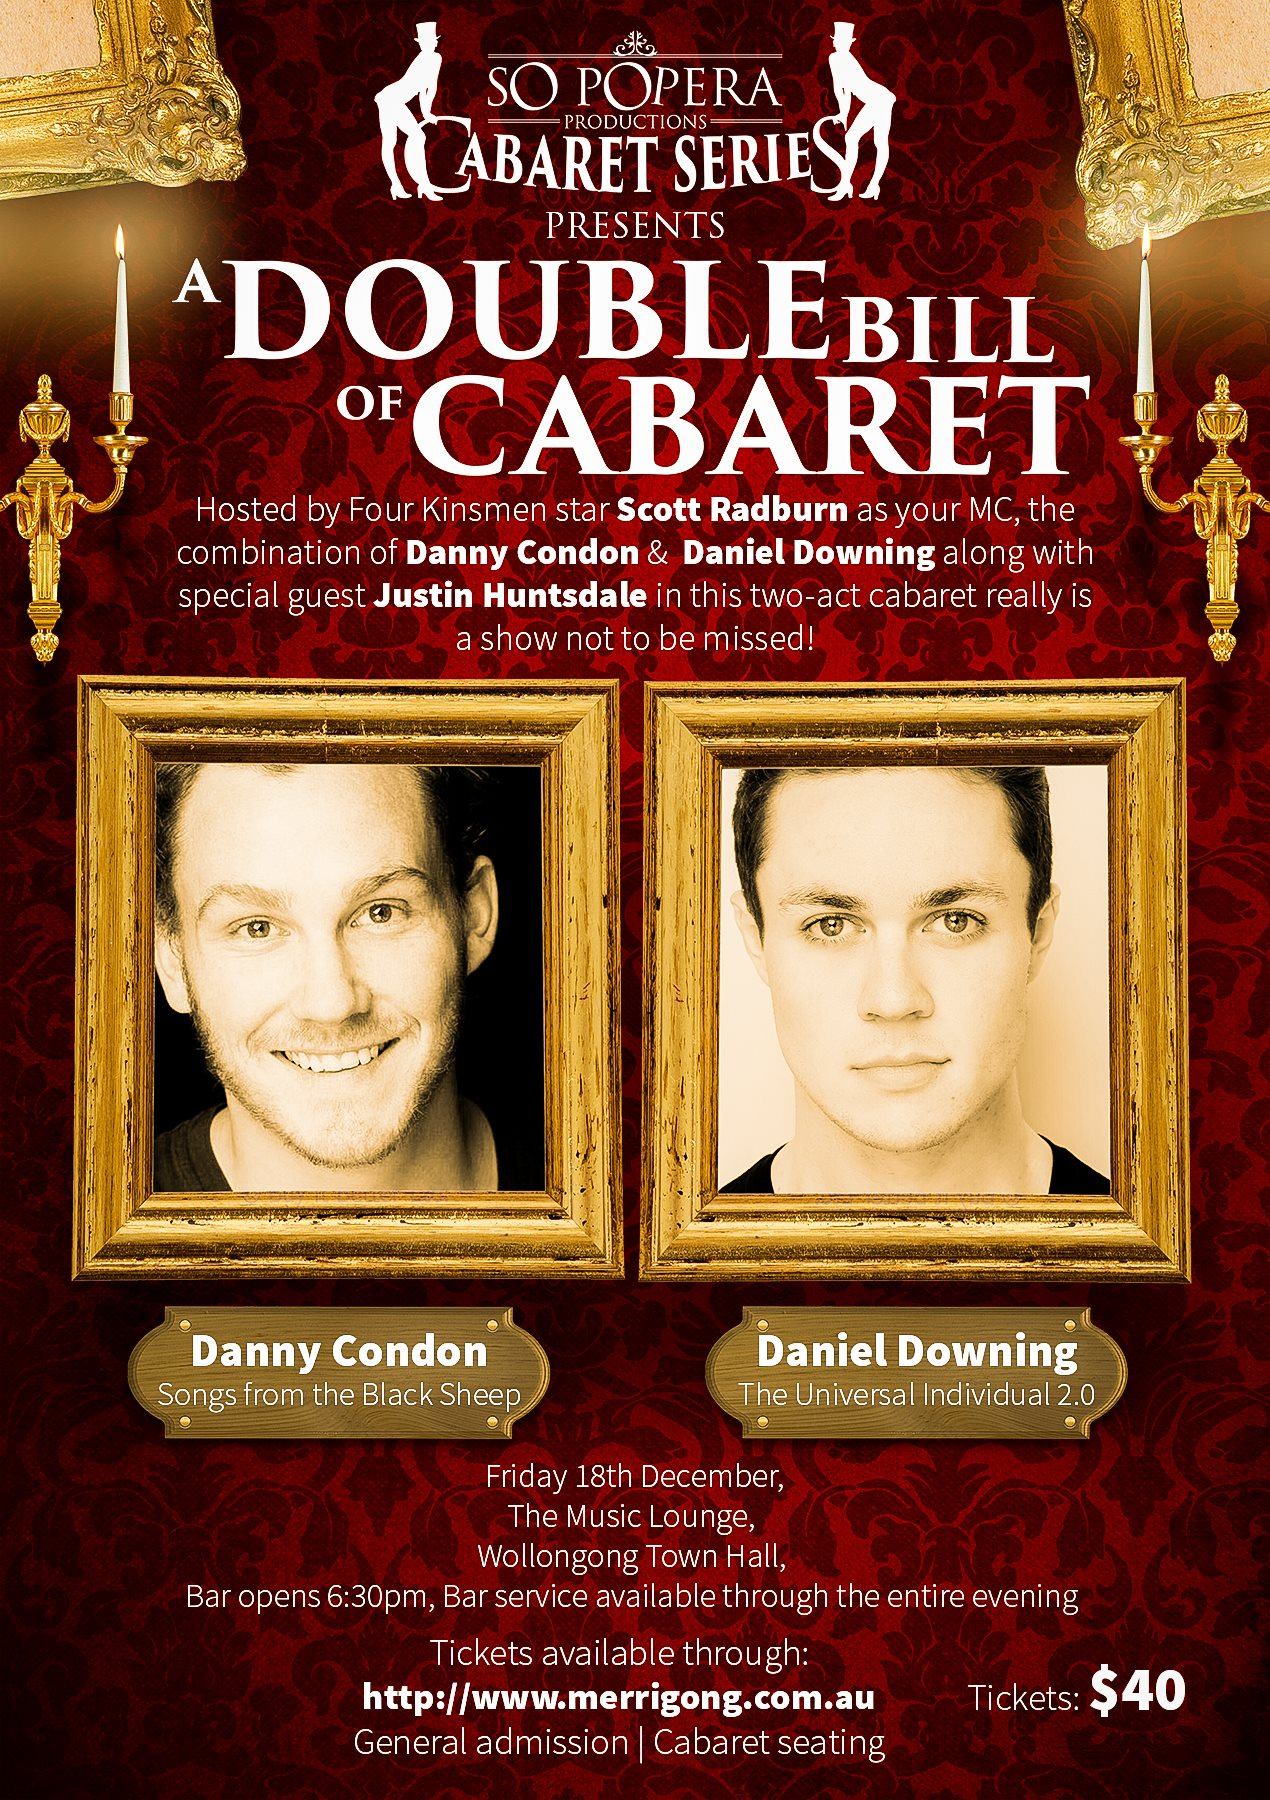 So Popera Cabaret Series Launched!